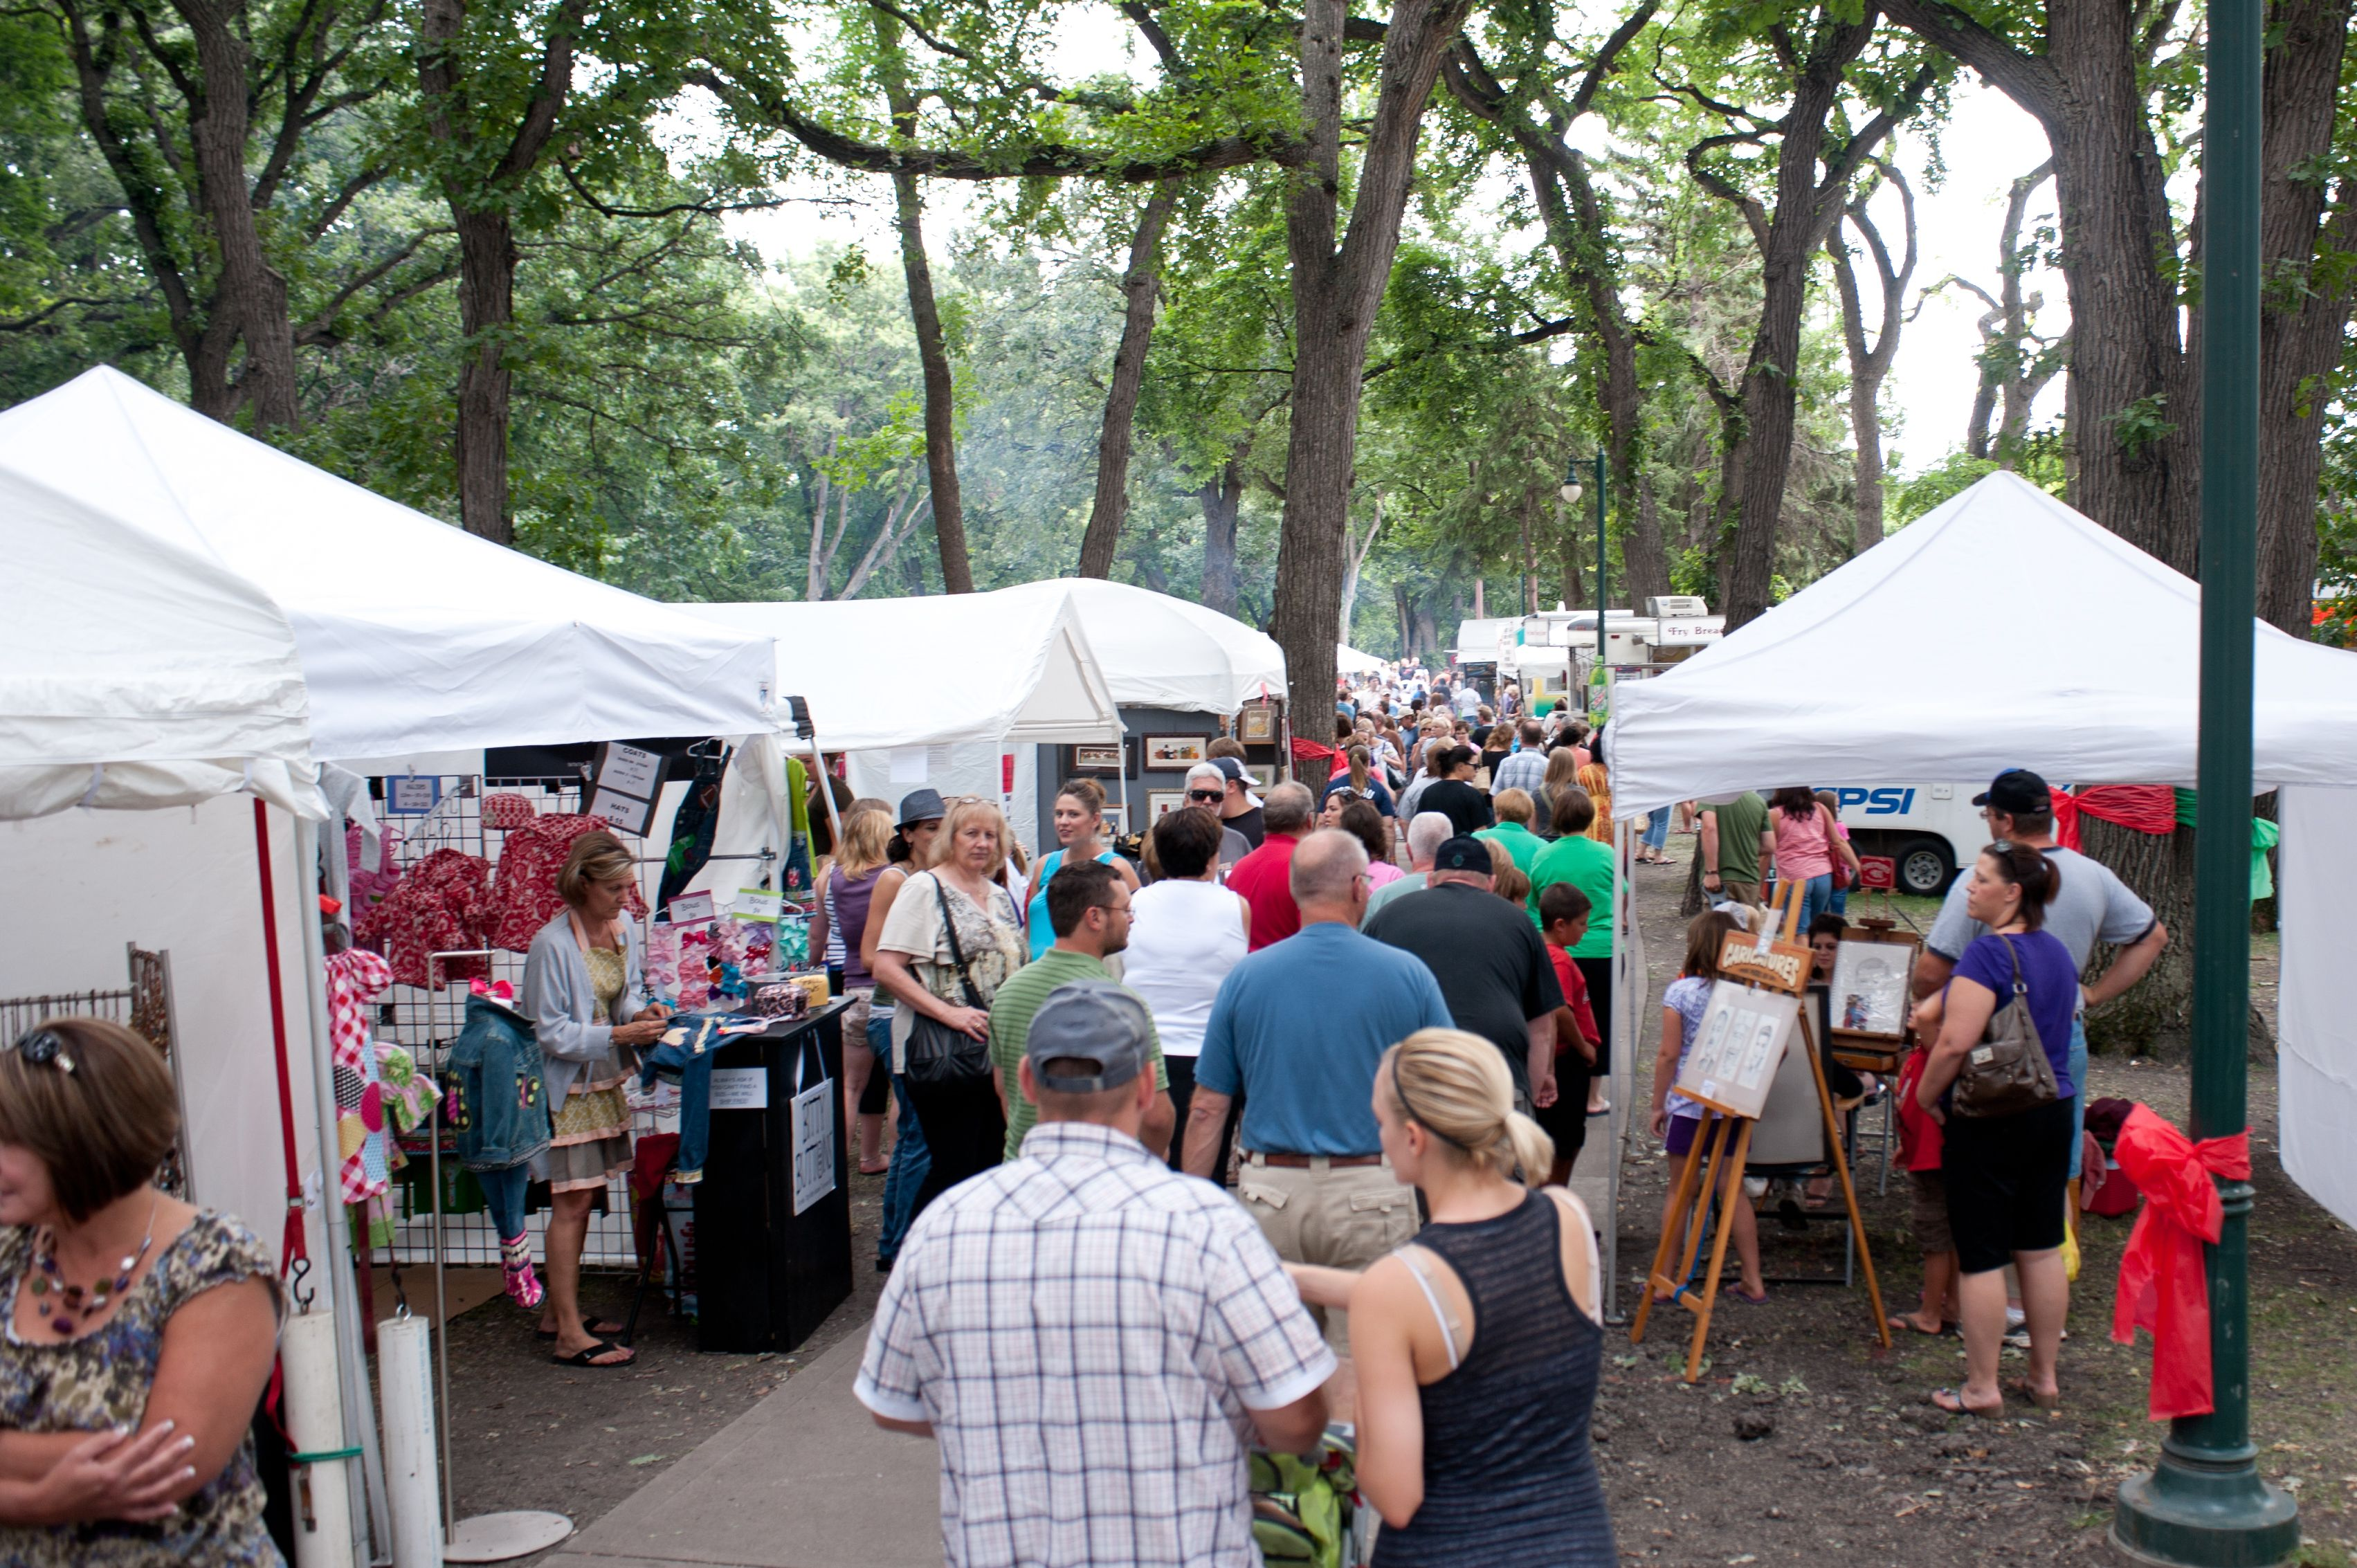 Island Park Craft Show In Fargo Nd Booths Of Handmade Crafts And Food Vendors A Mitch